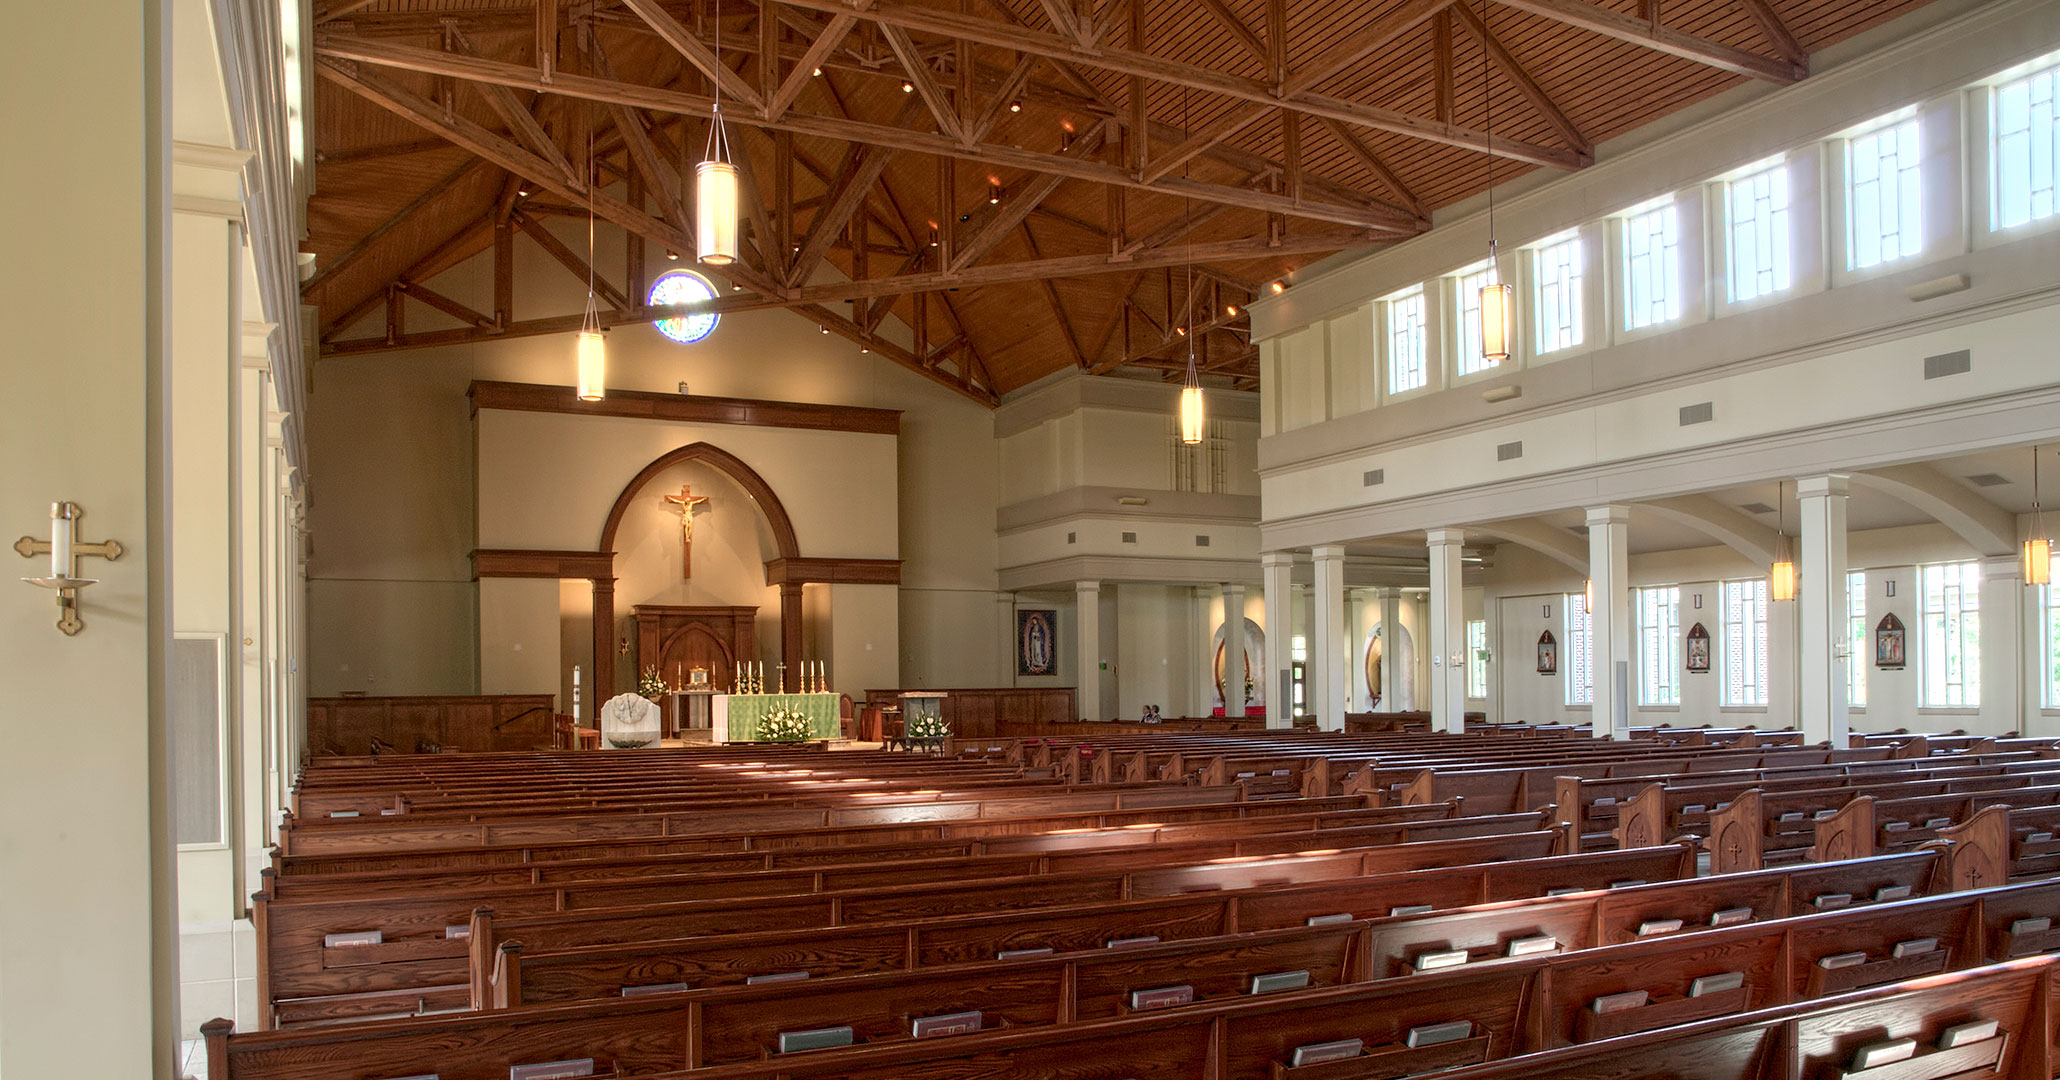 Boudreaux architects worked with St. Mark Catholic Church to design the interiors at the Catholic Church.